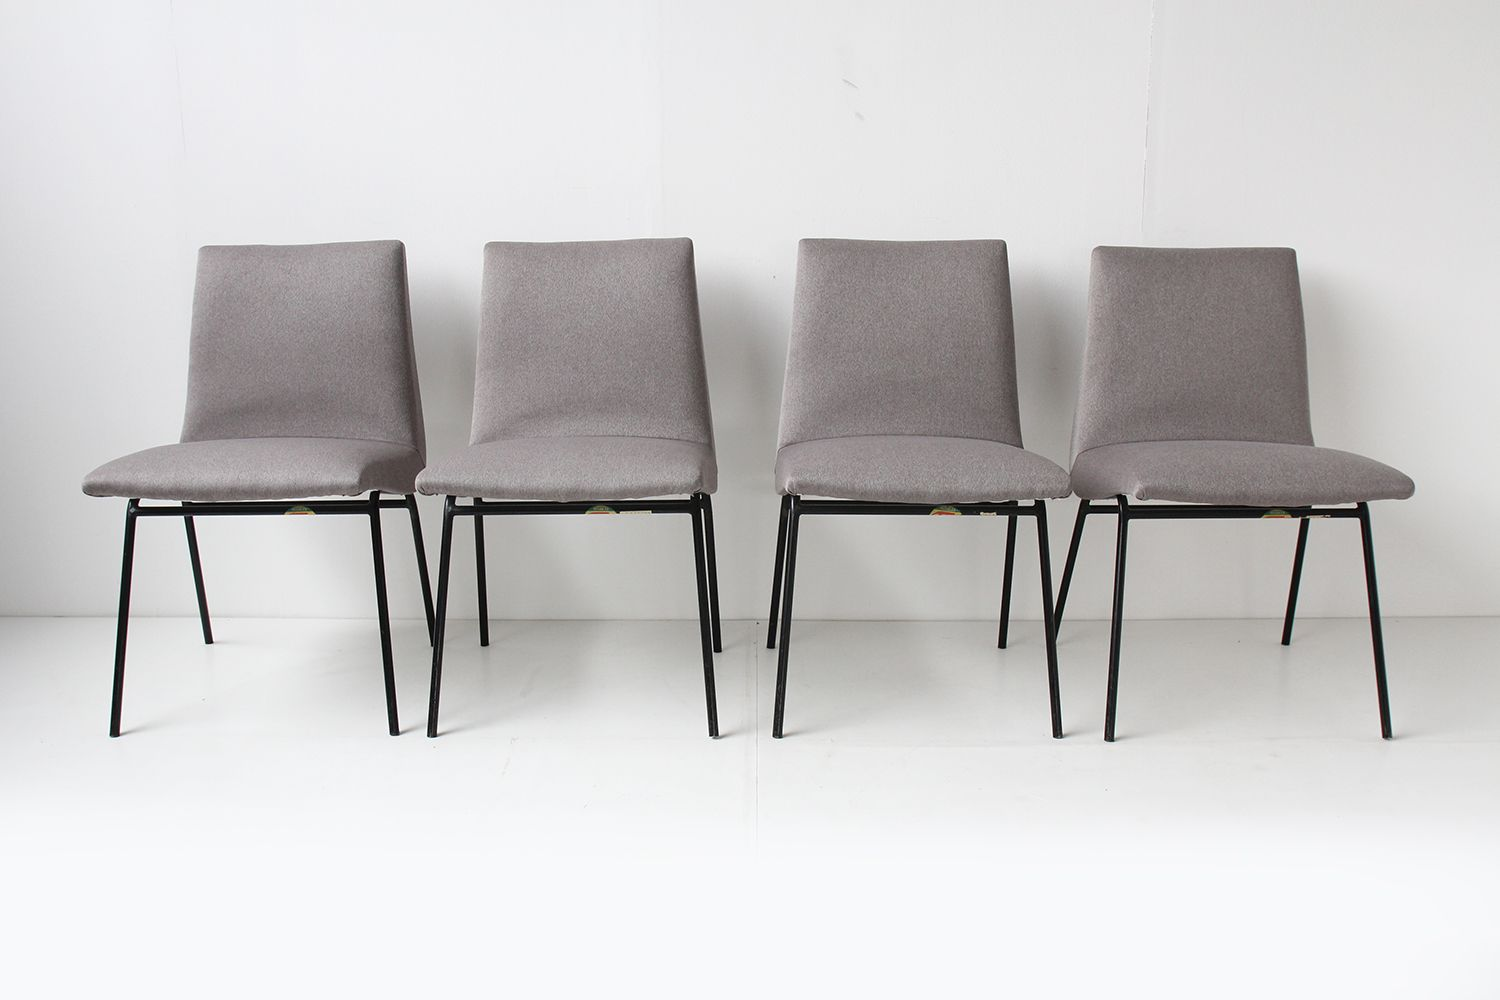 French dining chairs by pierre paulin for meubles tv 1950 for Meuble french